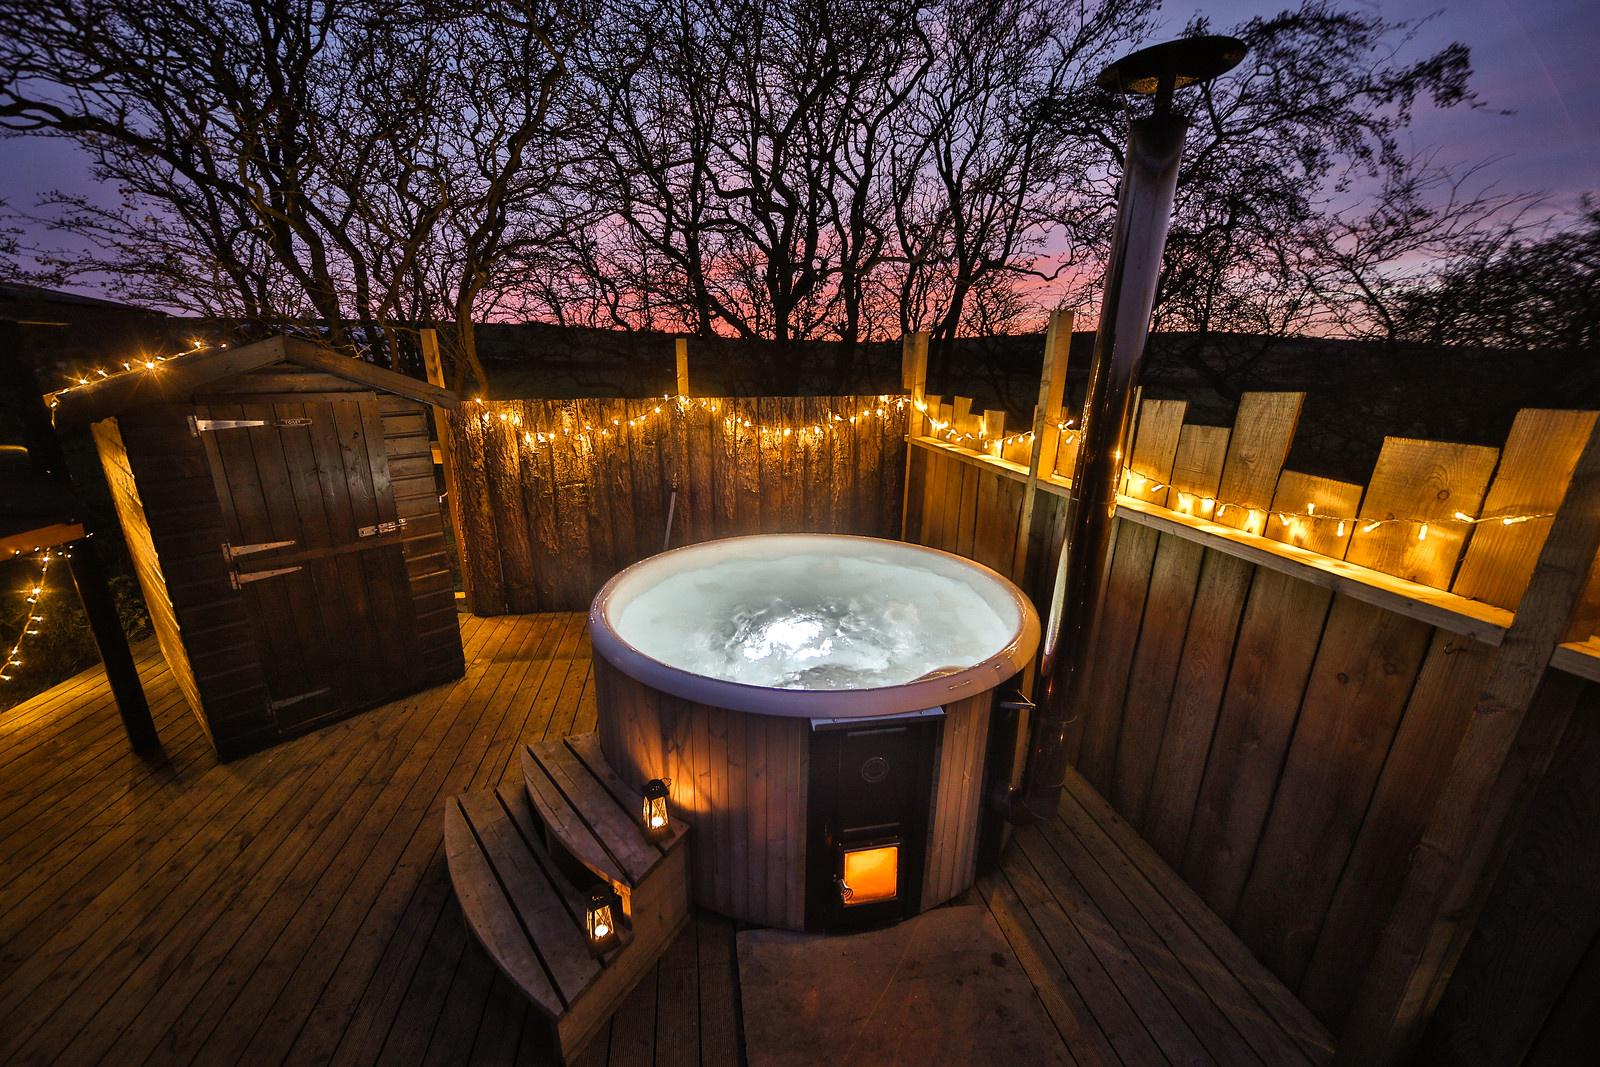 Glamping Sites With Hot Tubs | The Best Hot Tub Glamping Sites